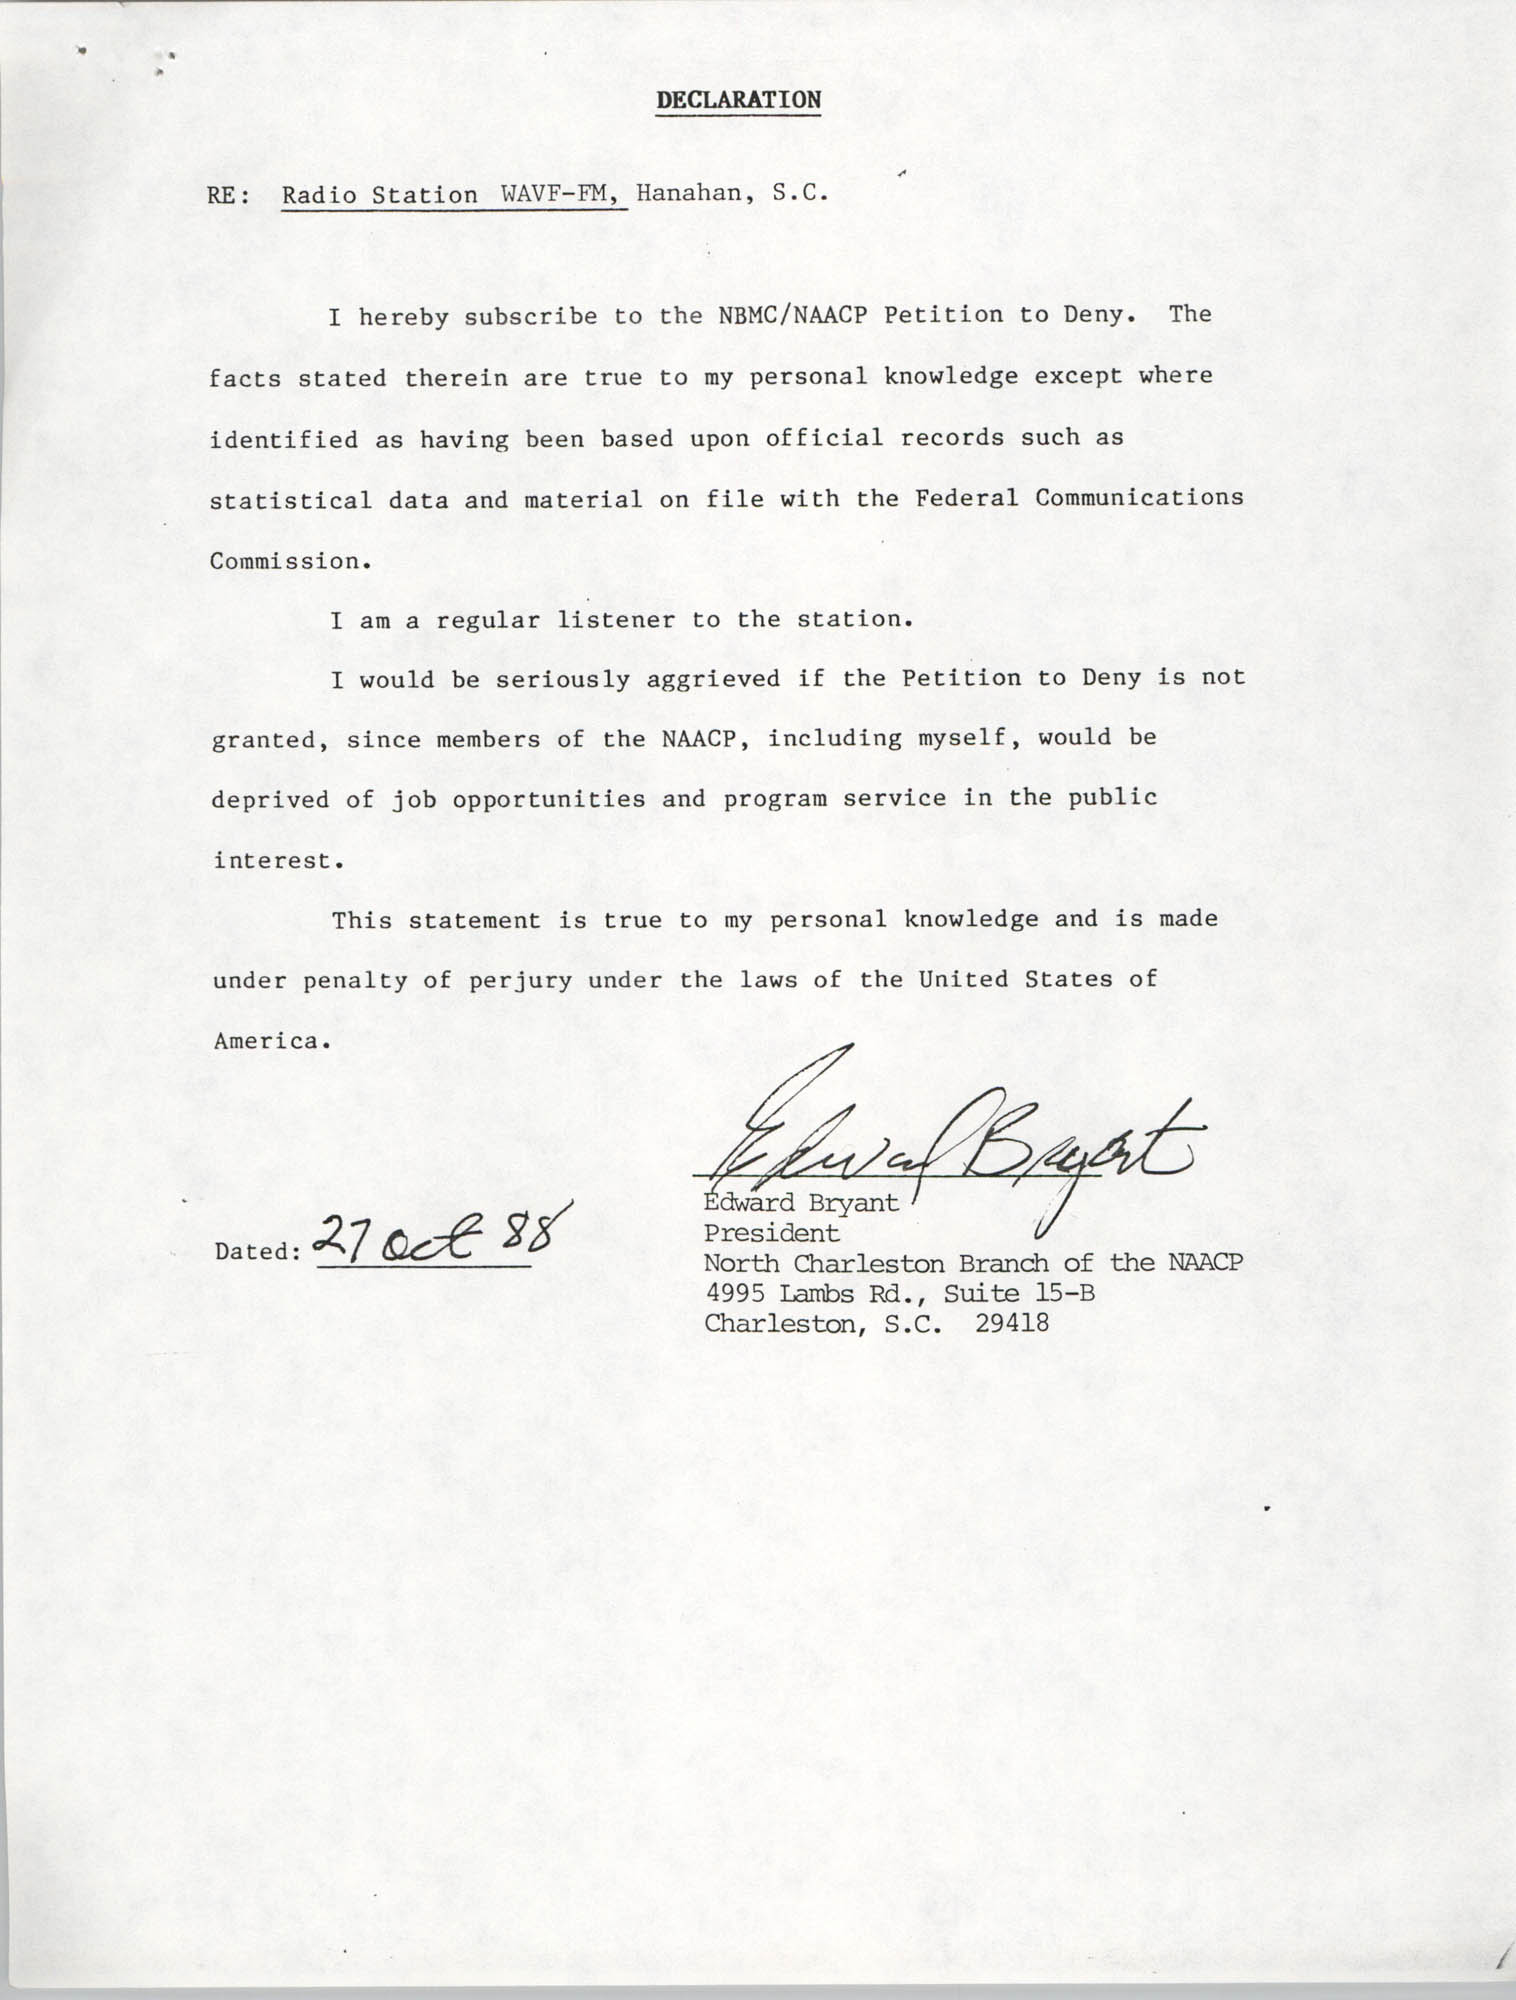 NAACP Petition Submitted Before the Federal Communications Commission, Declaration from Edward Bryant